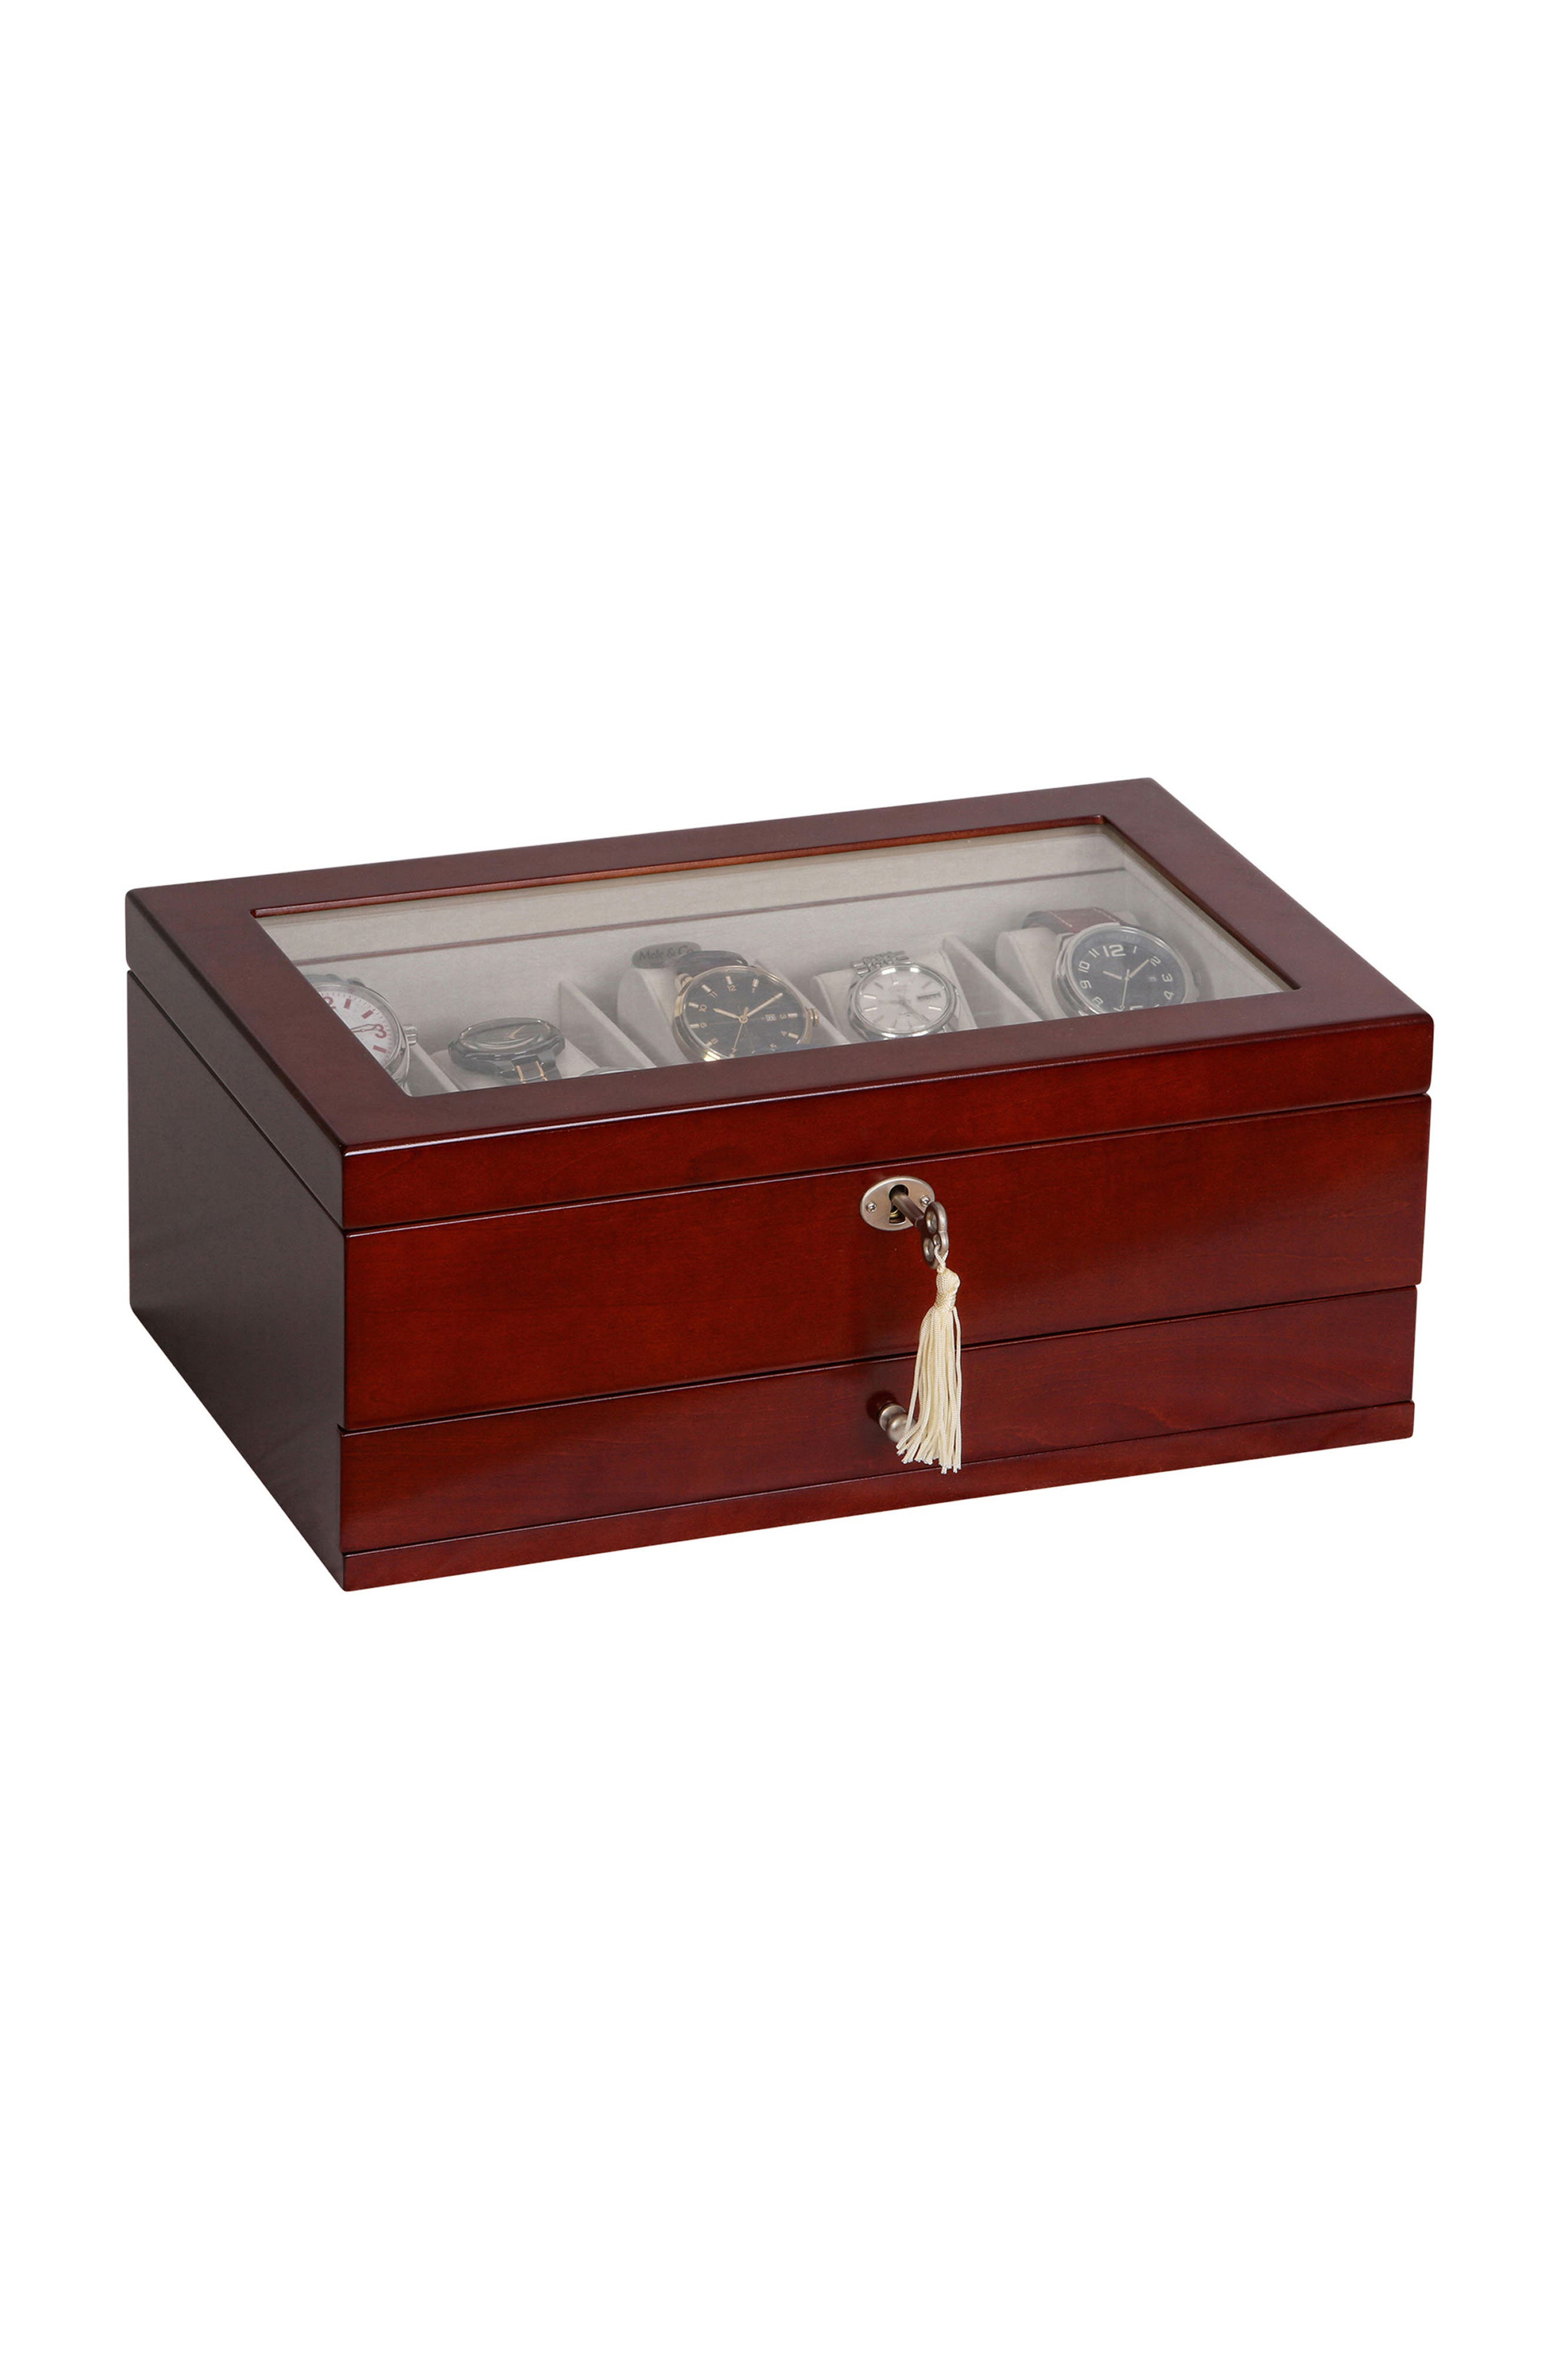 Main Image - Mele & Co. Christo Locking Watch & Jewelry Box